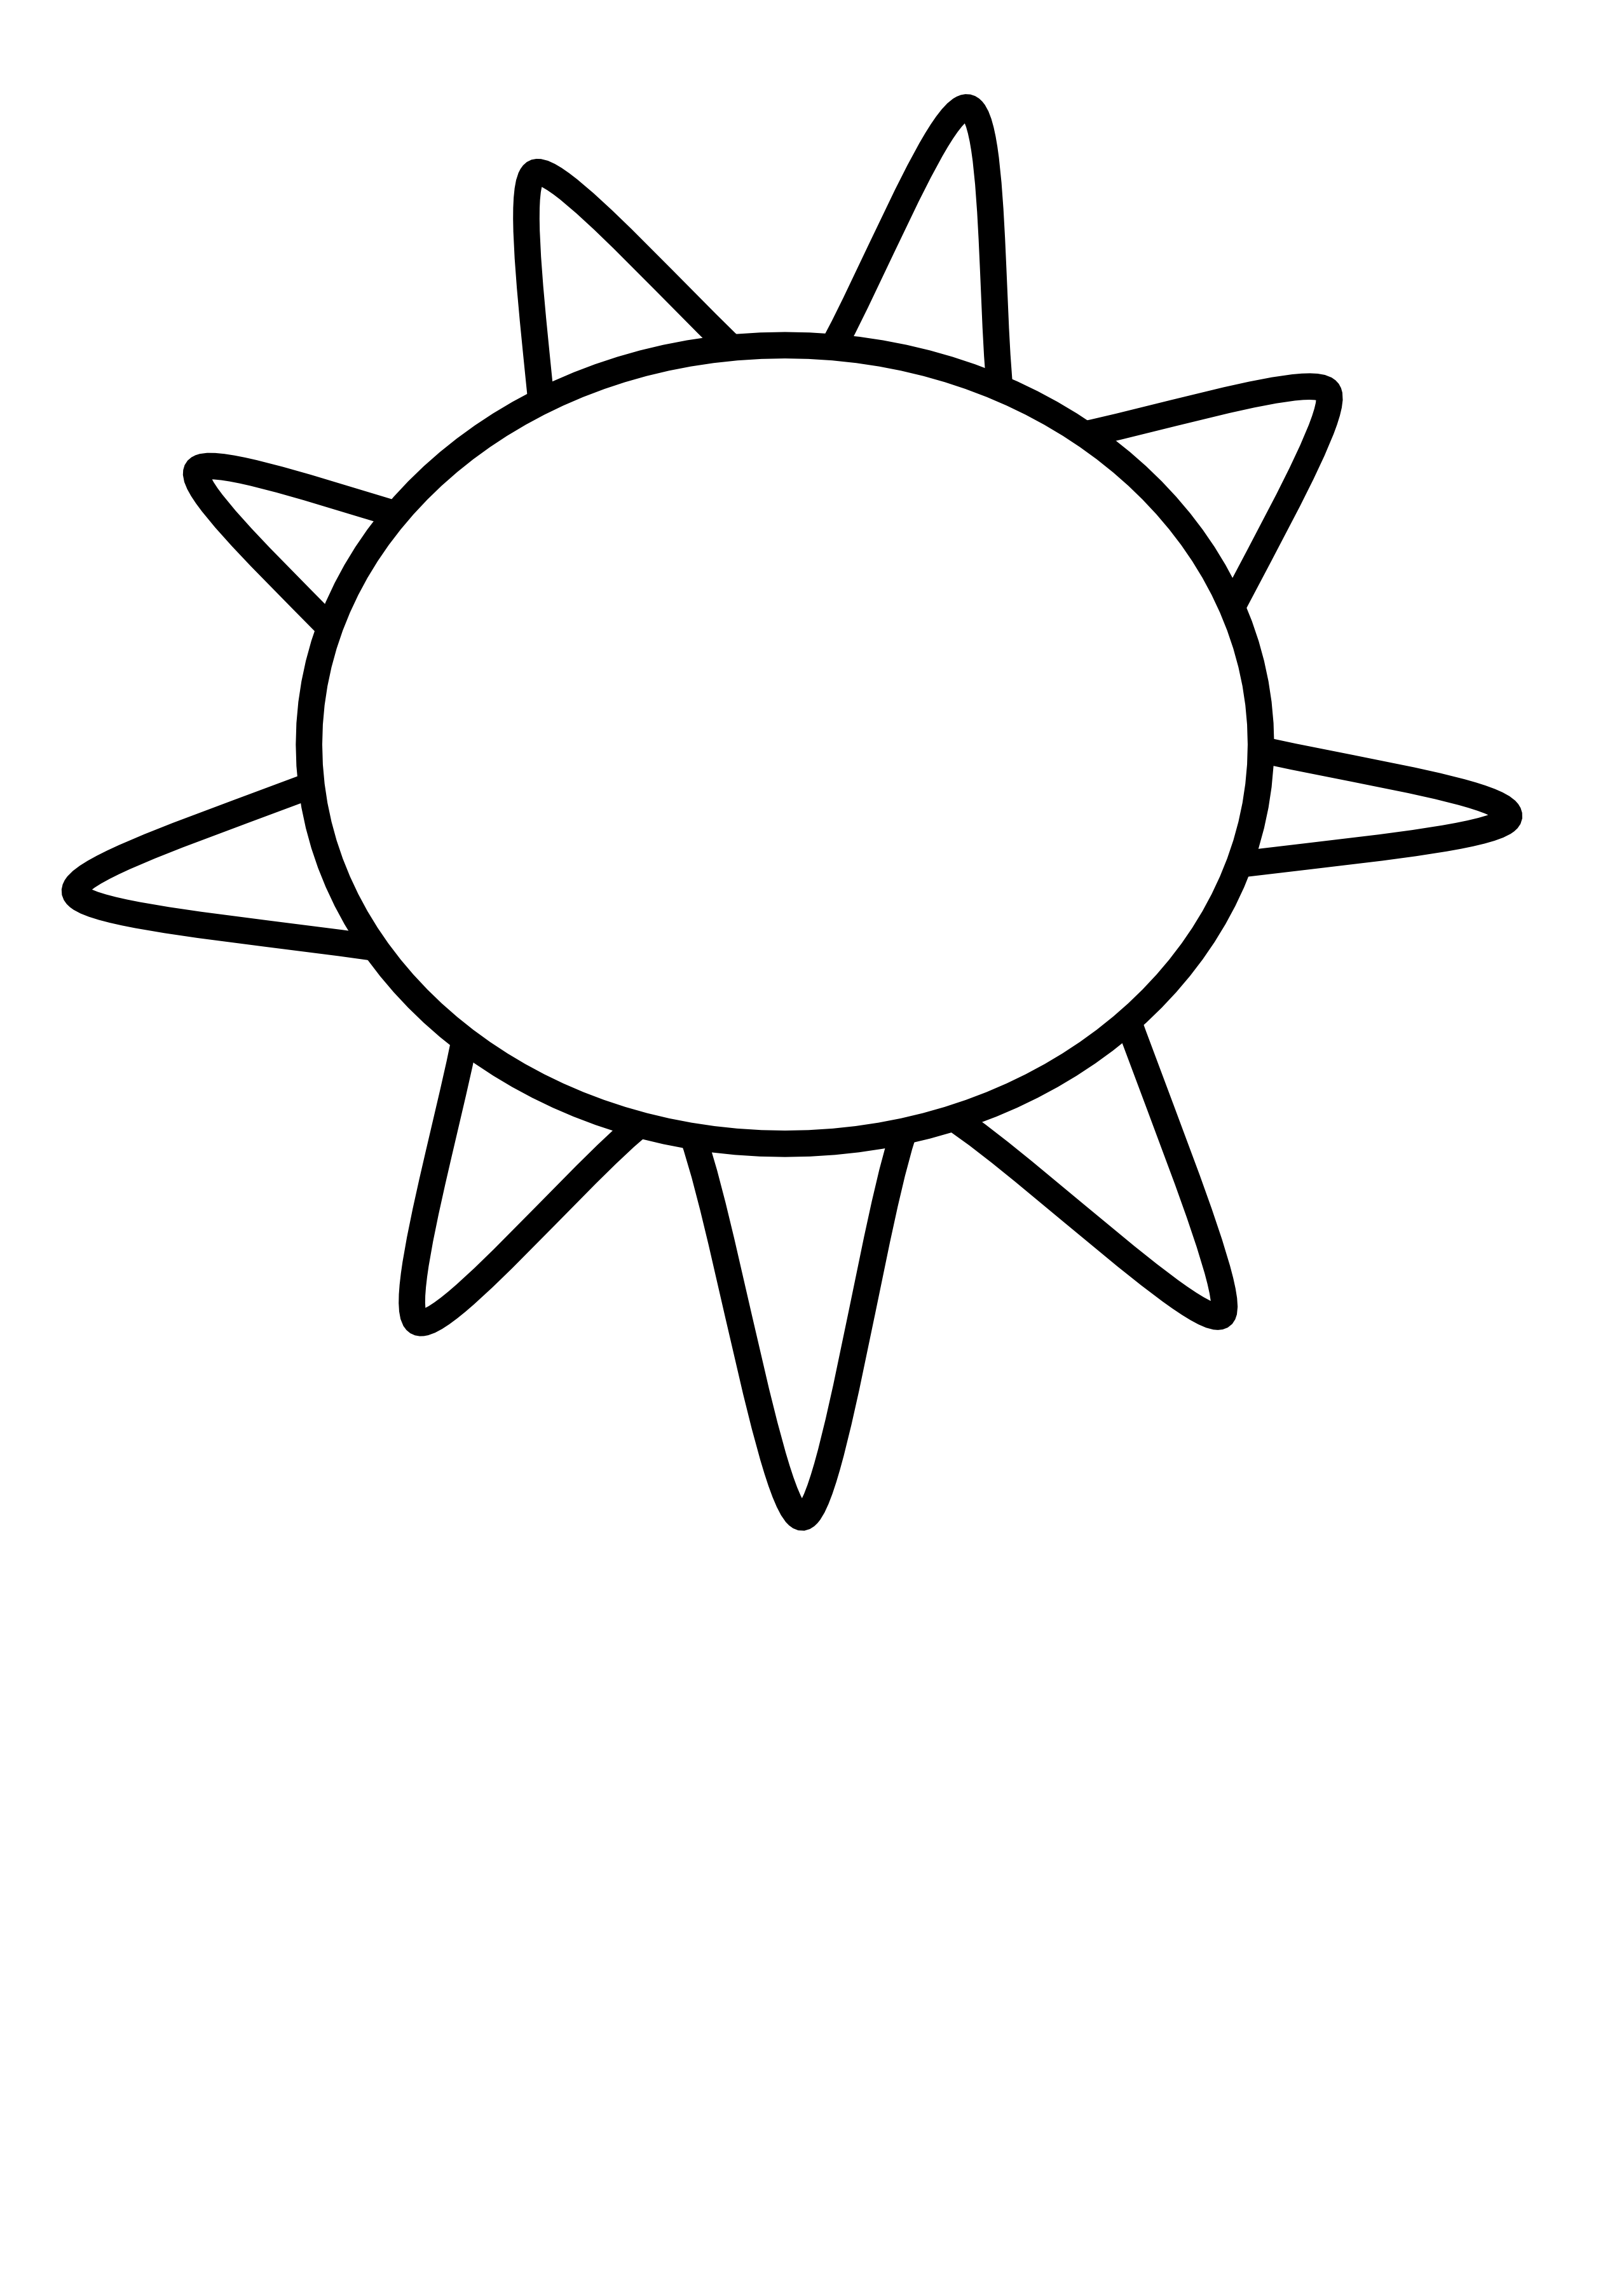 Sun with face clipart black and white cute picture transparent Free Black And White Sun Clipart, Download Free Clip Art, Free Clip ... picture transparent